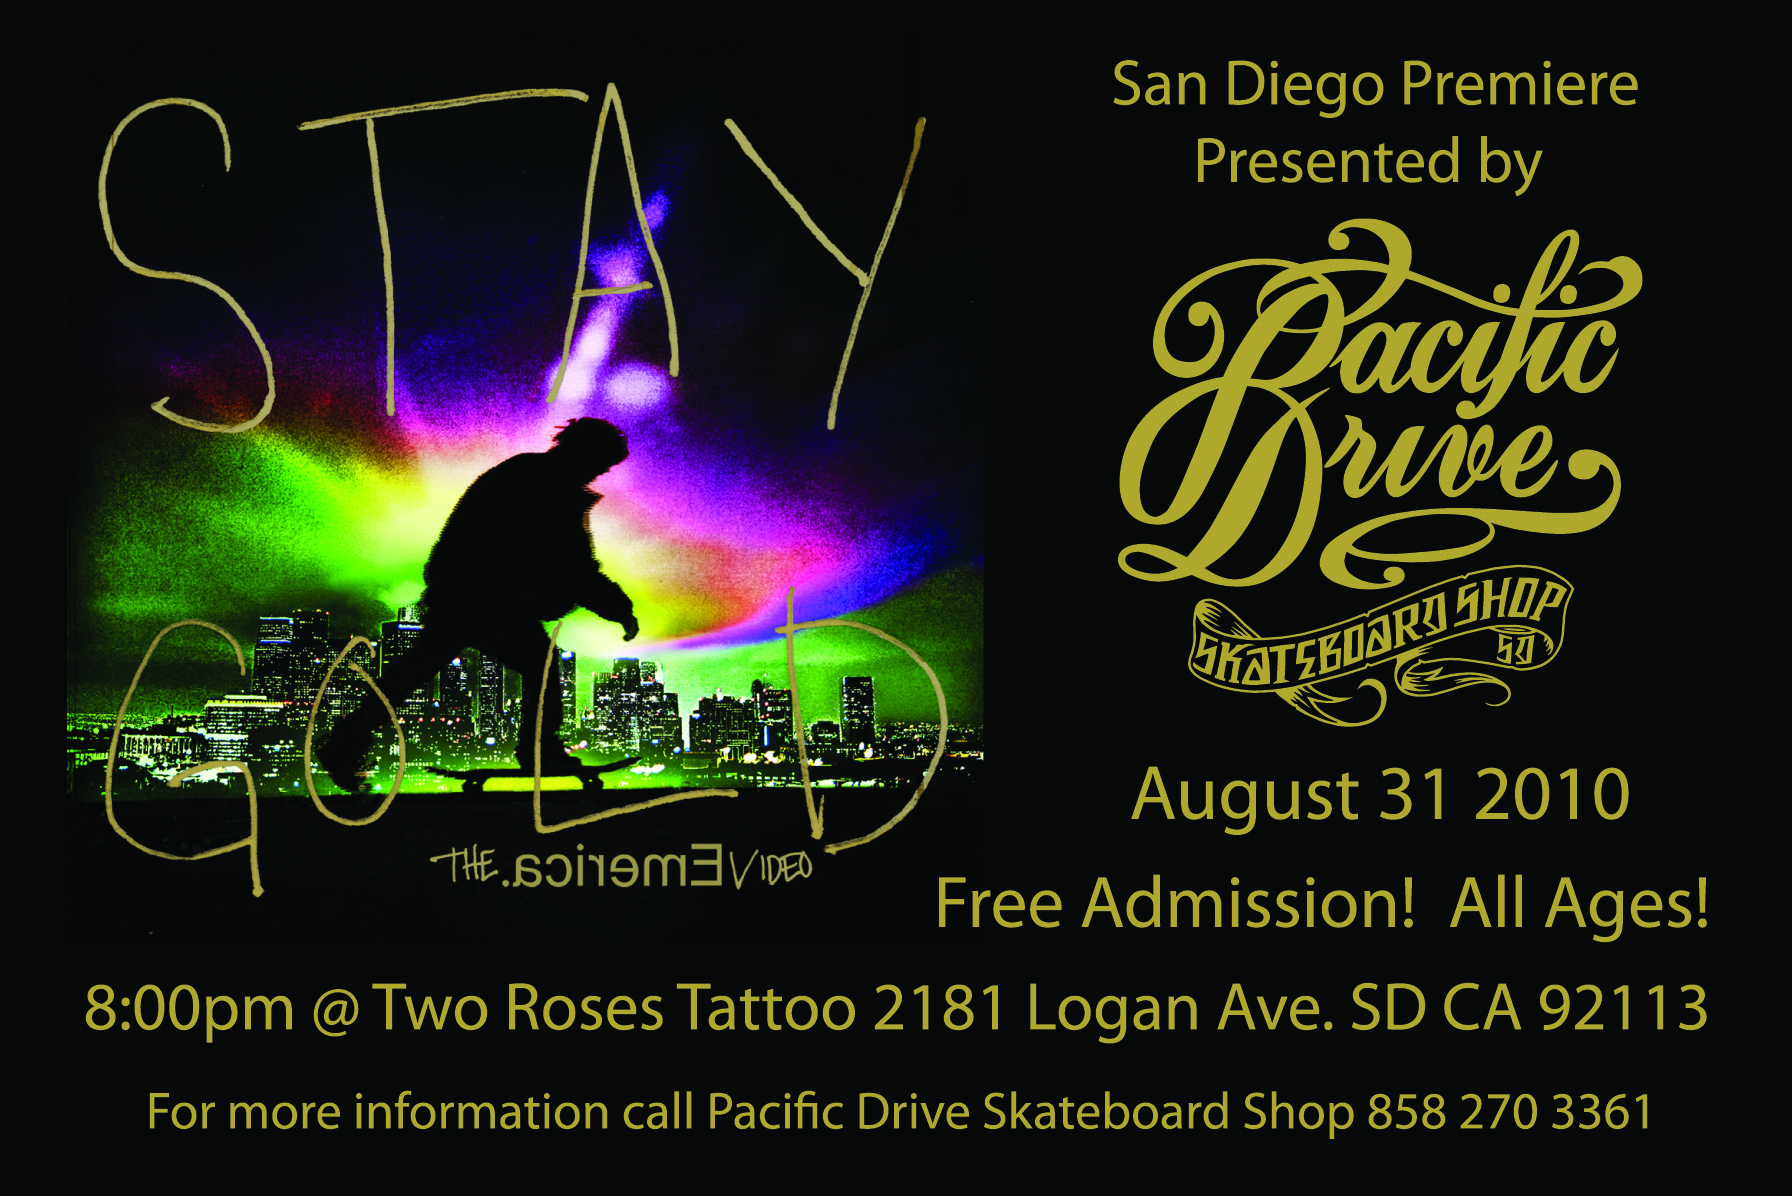 Emerica Stay Gold Premiere Two Roses Aug 31st Sinister Urge